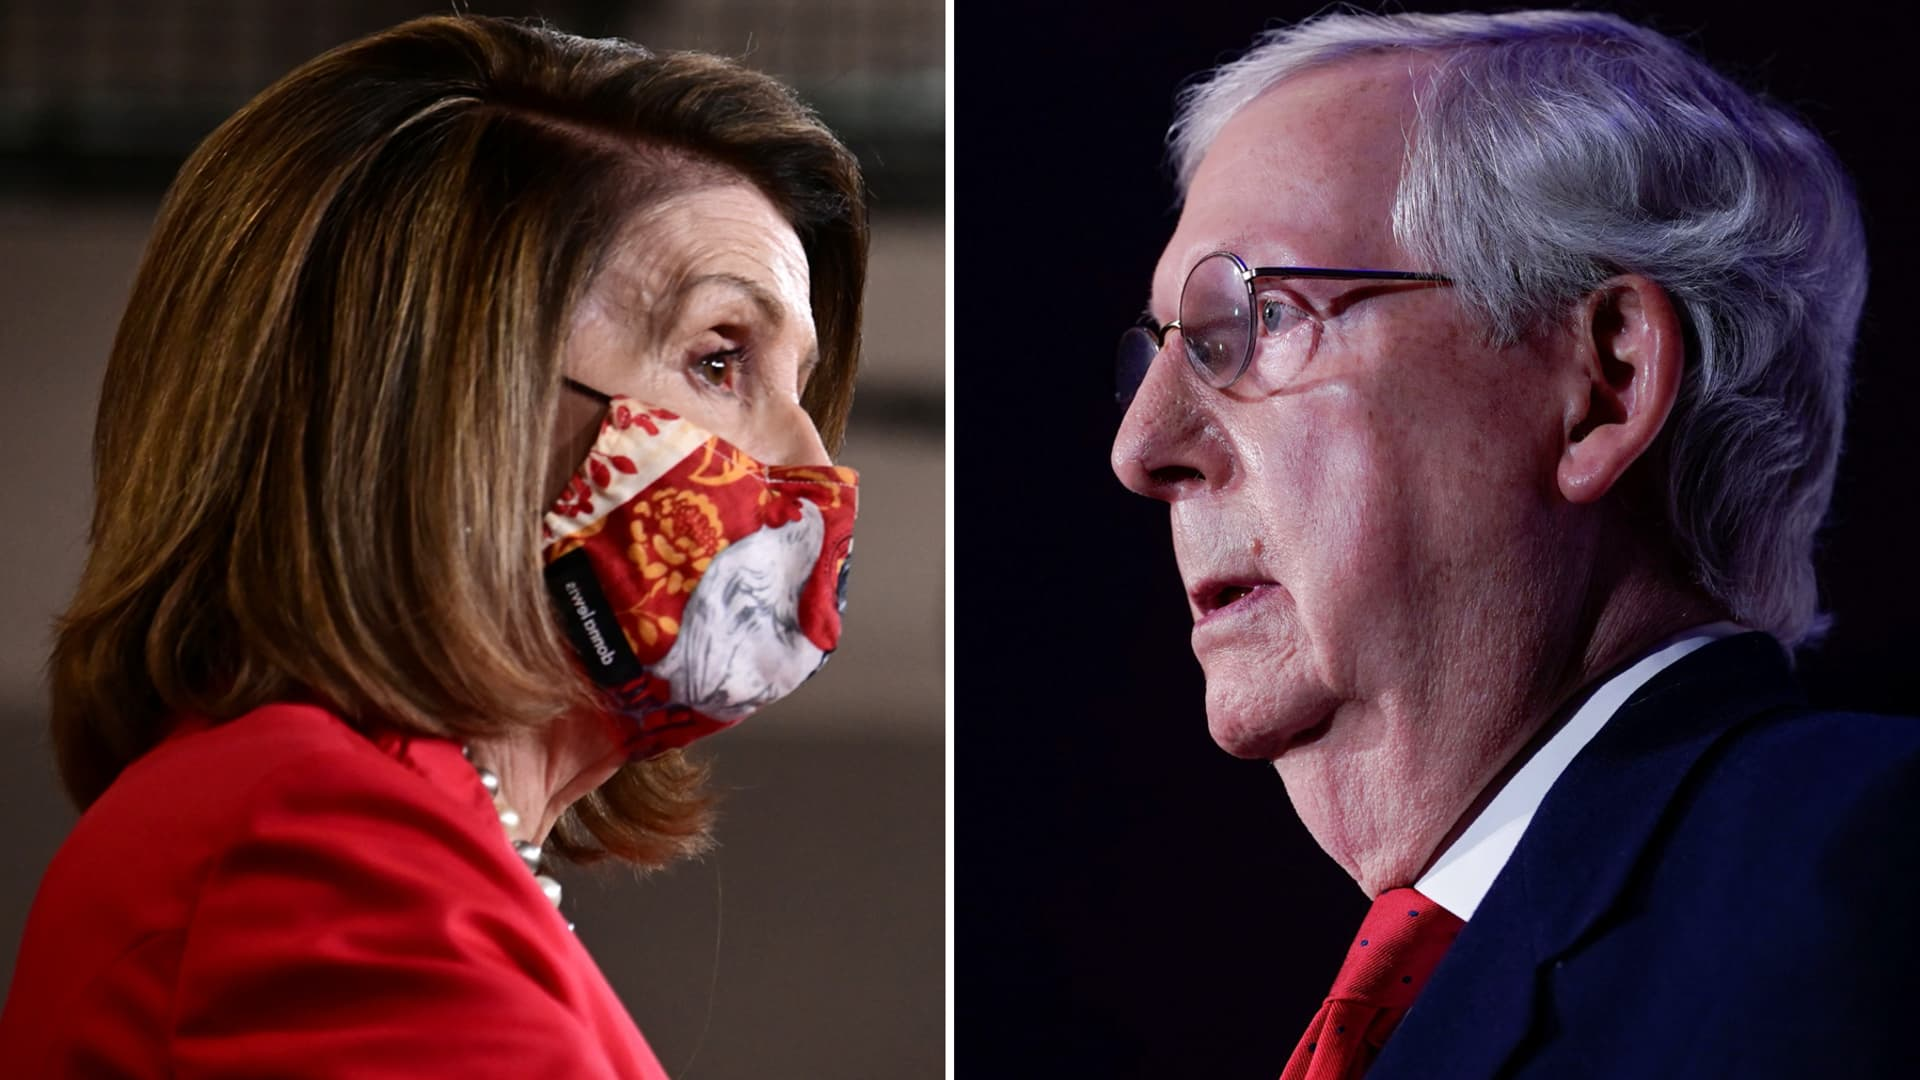 Speaker of the House Nancy Pelosi and Senate Majority Leader Mitch McConnell.